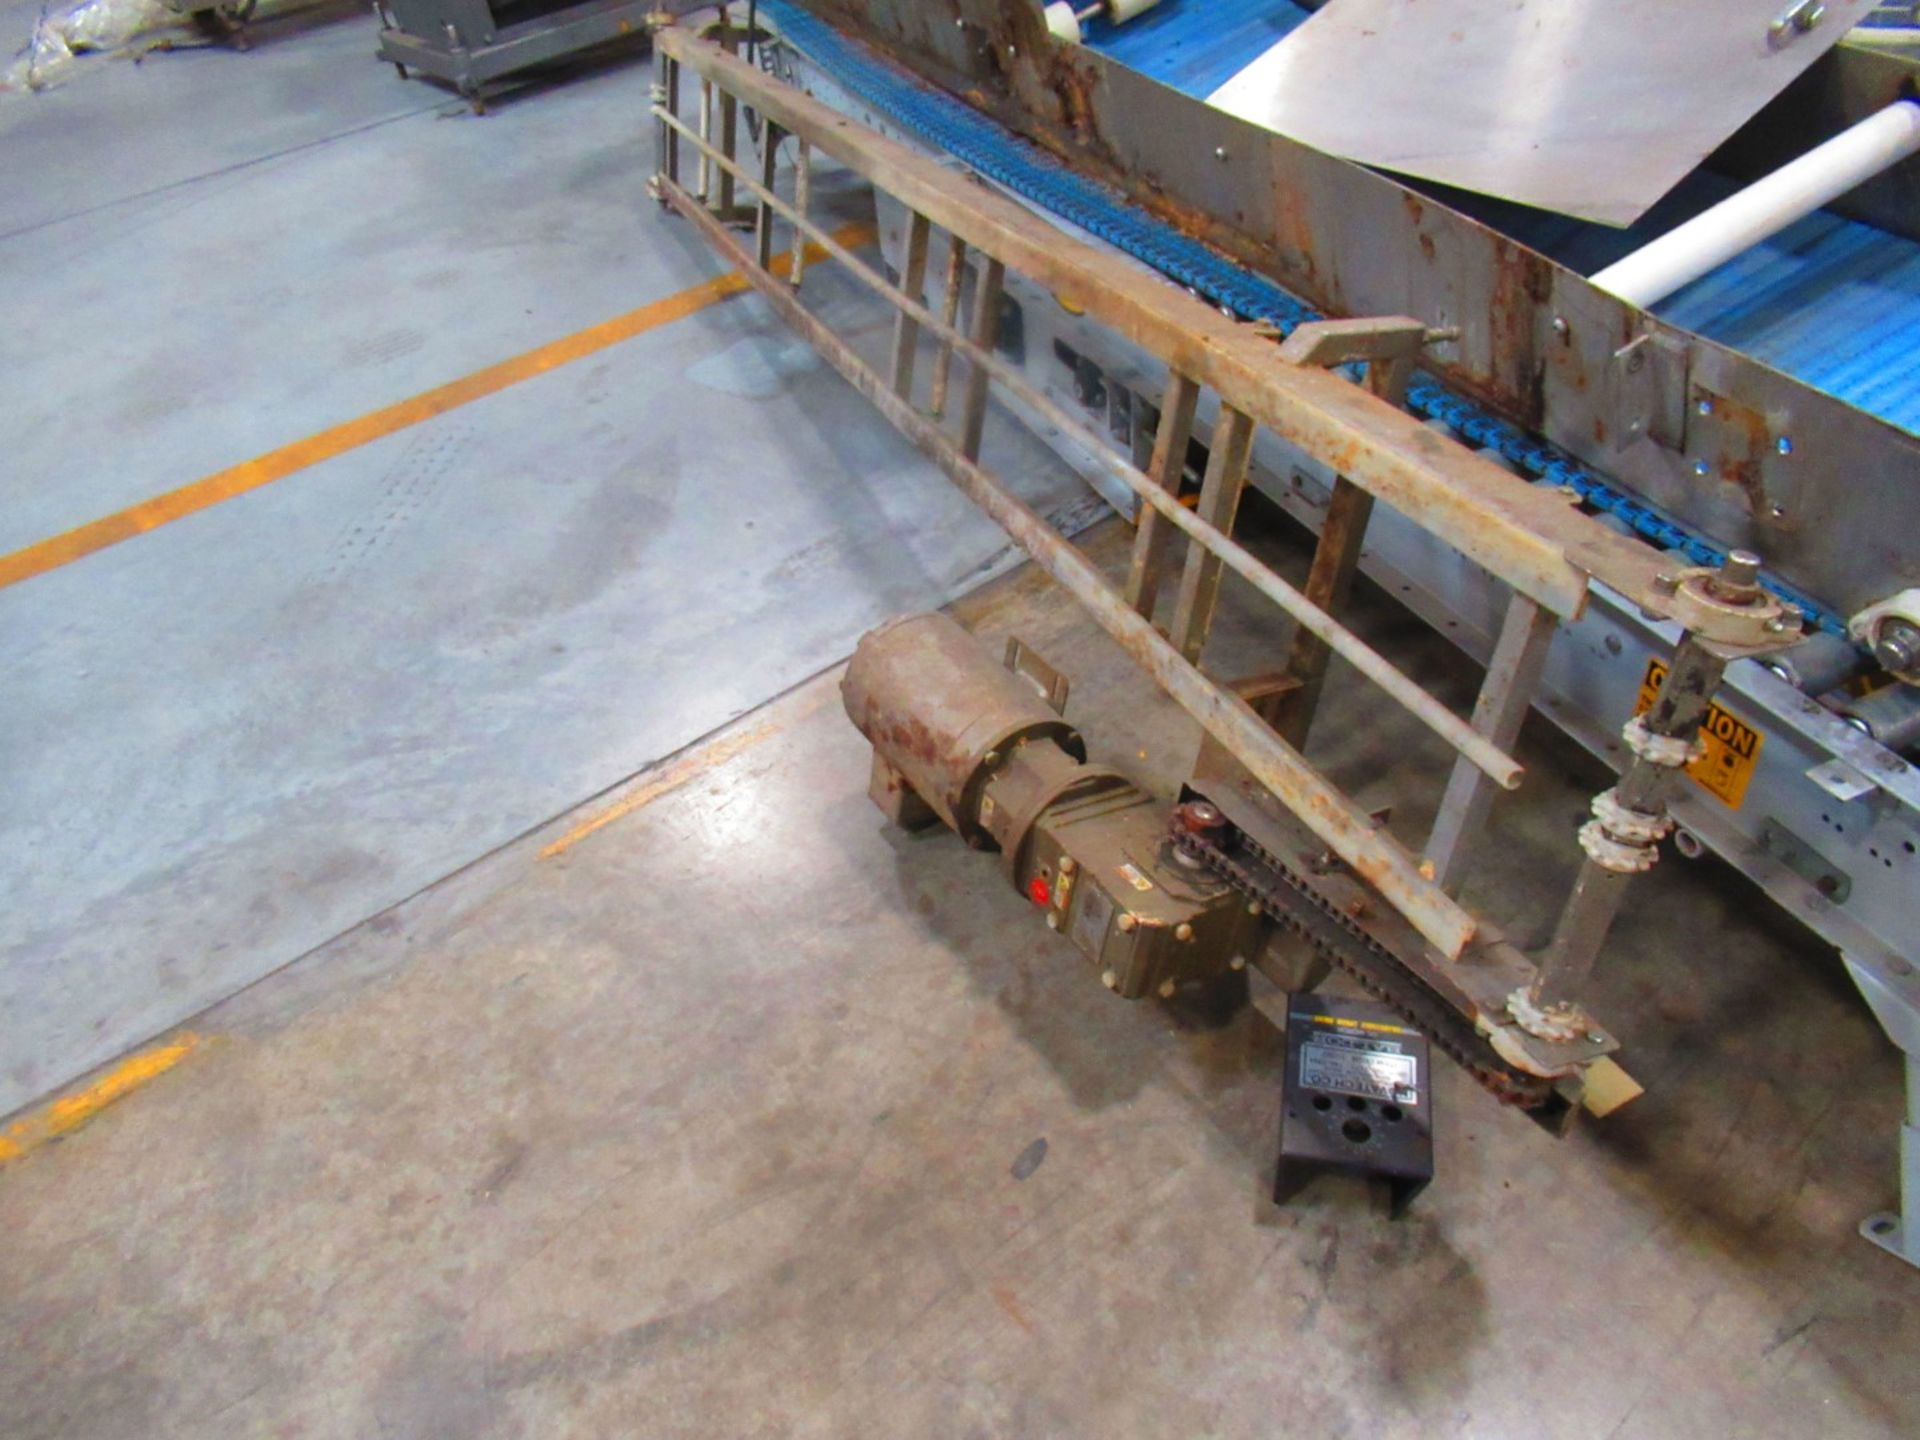 Conveyors - Image 3 of 7